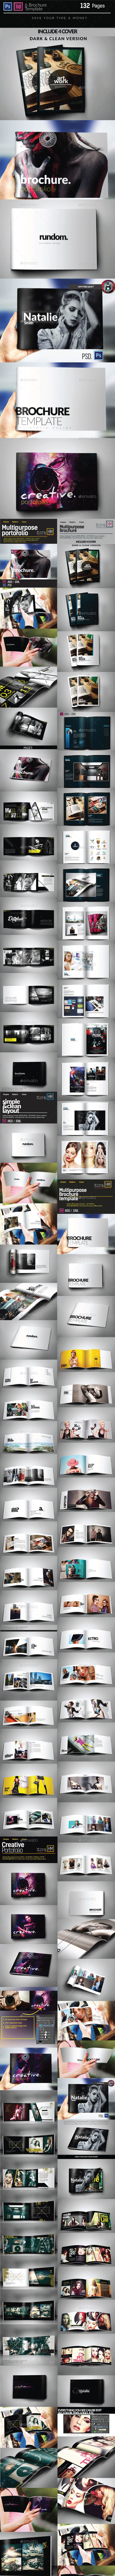 6 Bundle Brochure Template